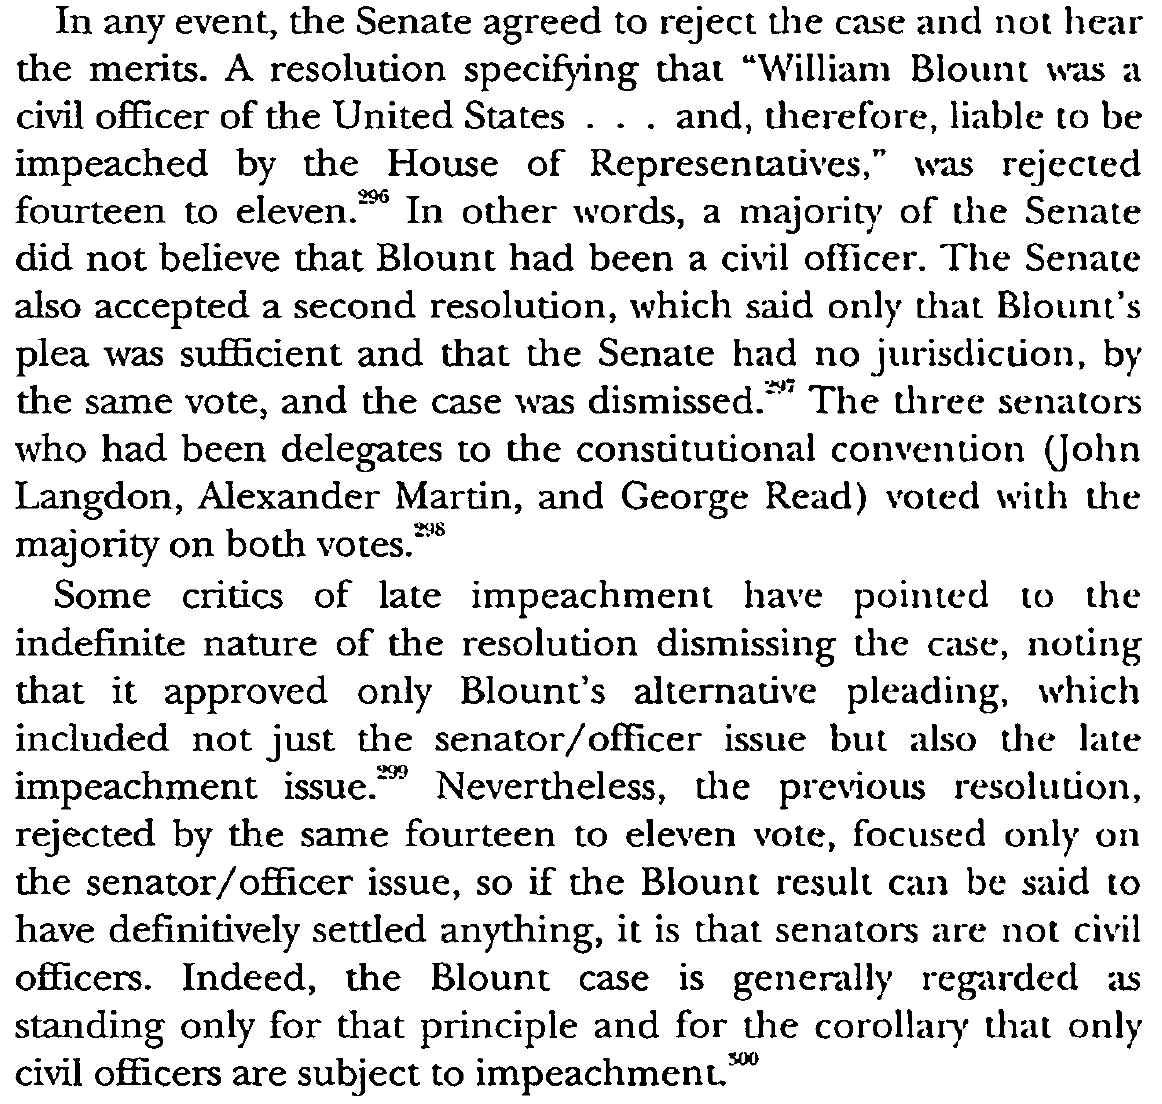 Sorry. It appears that the Blount case established that senators are not 'civil officers' and thus not subject to impeachment. (A decision made by senators themselves, interestingly.)  https://t.co/d6XXSyM9AX  https://t.co/pfDgRl5Qmx https://t.co/FOnBhnS1k8